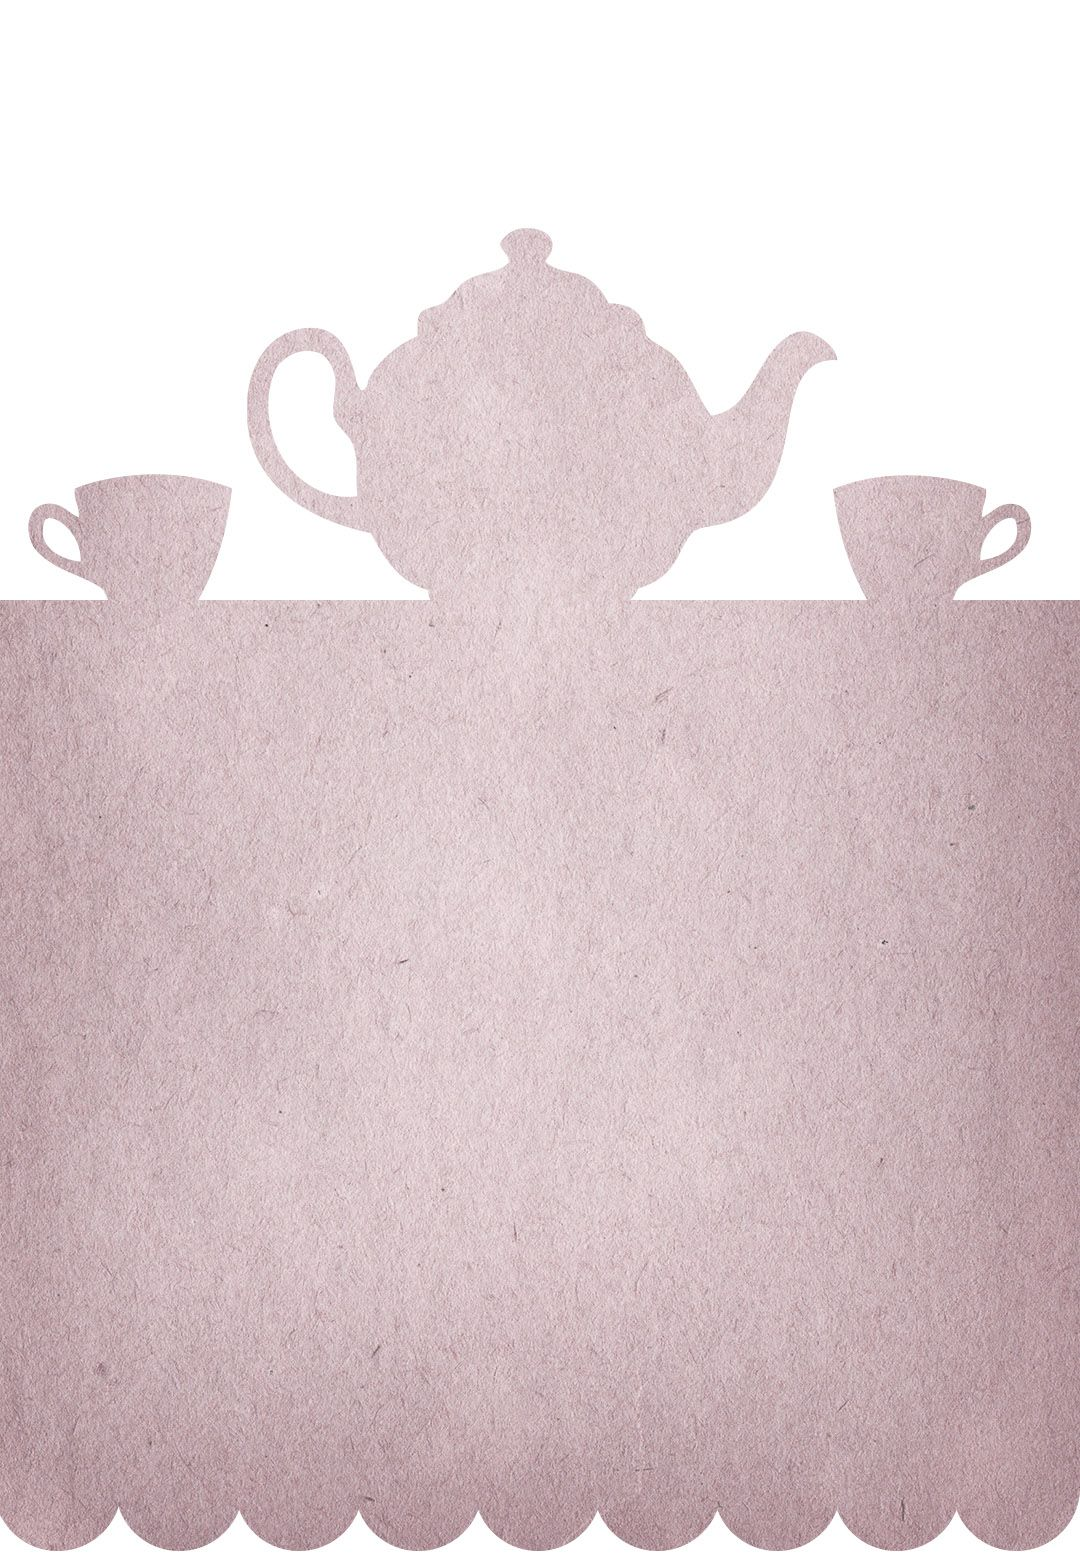 Tea Party Free Printable Party Invitation Template Greetings - Tea party invitation template free